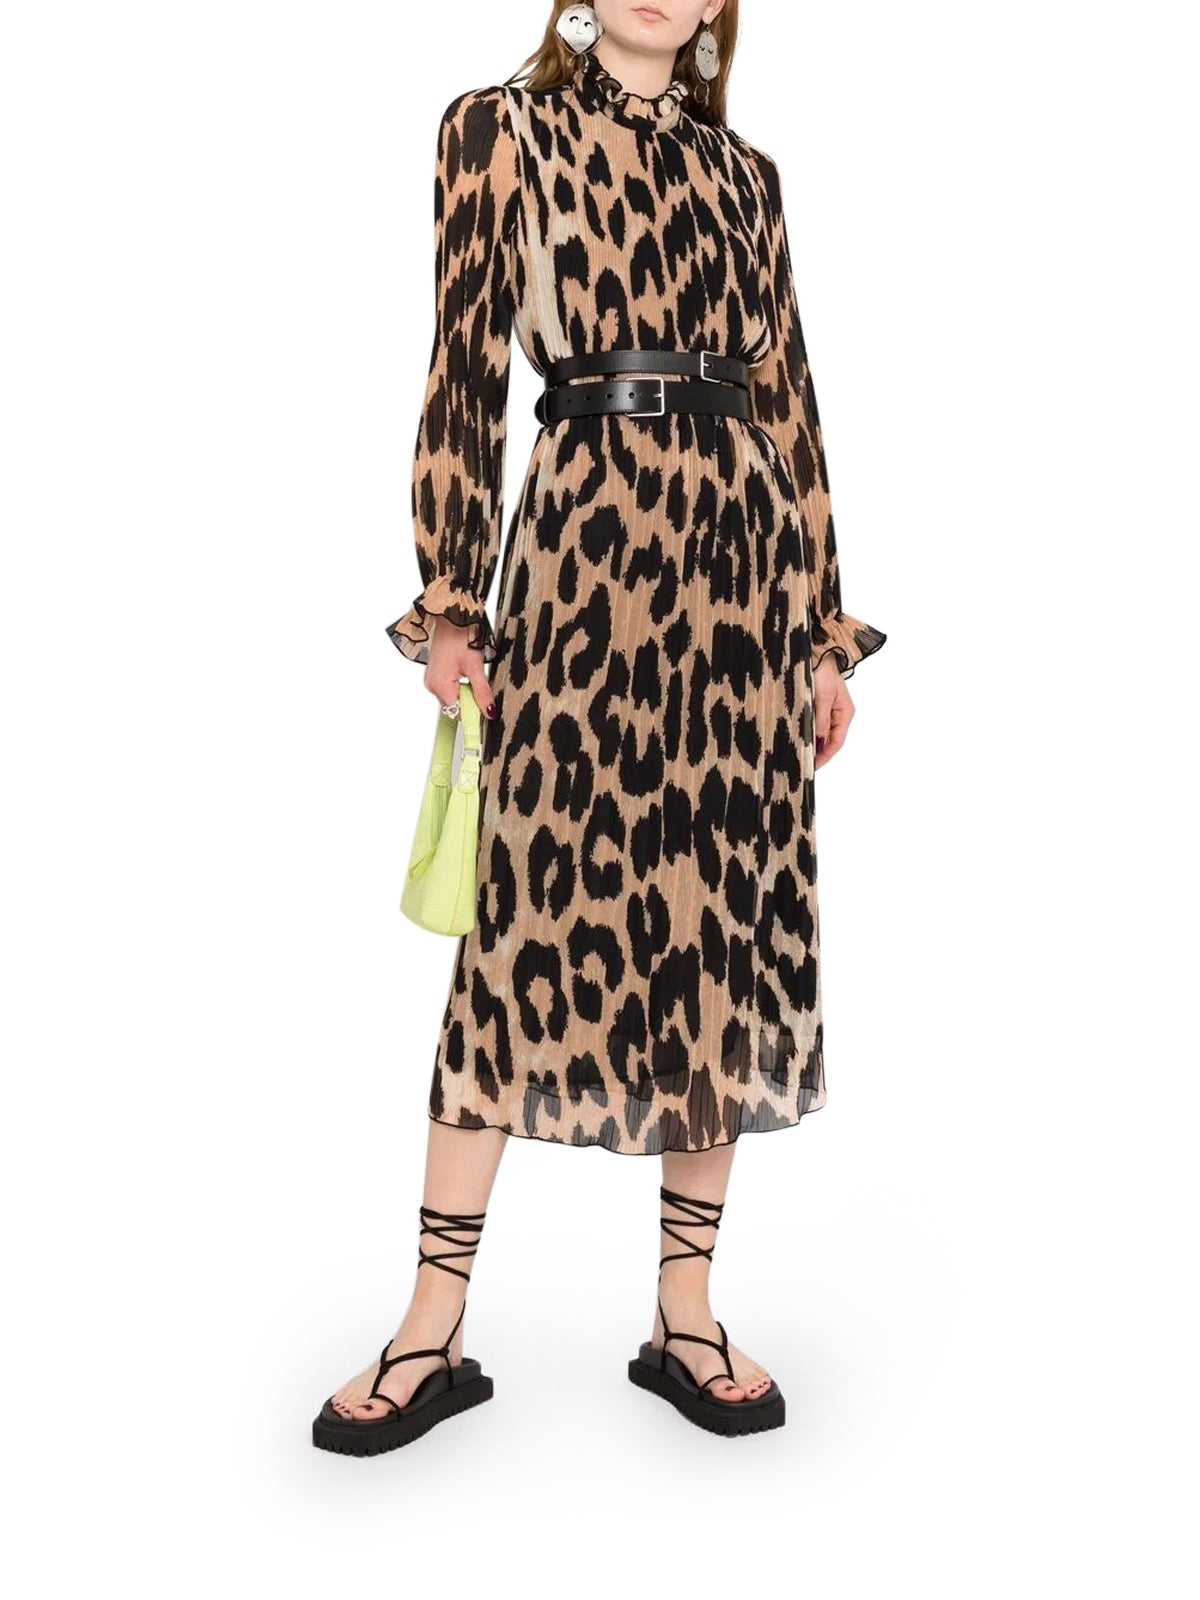 leopard-print georgette midi dress